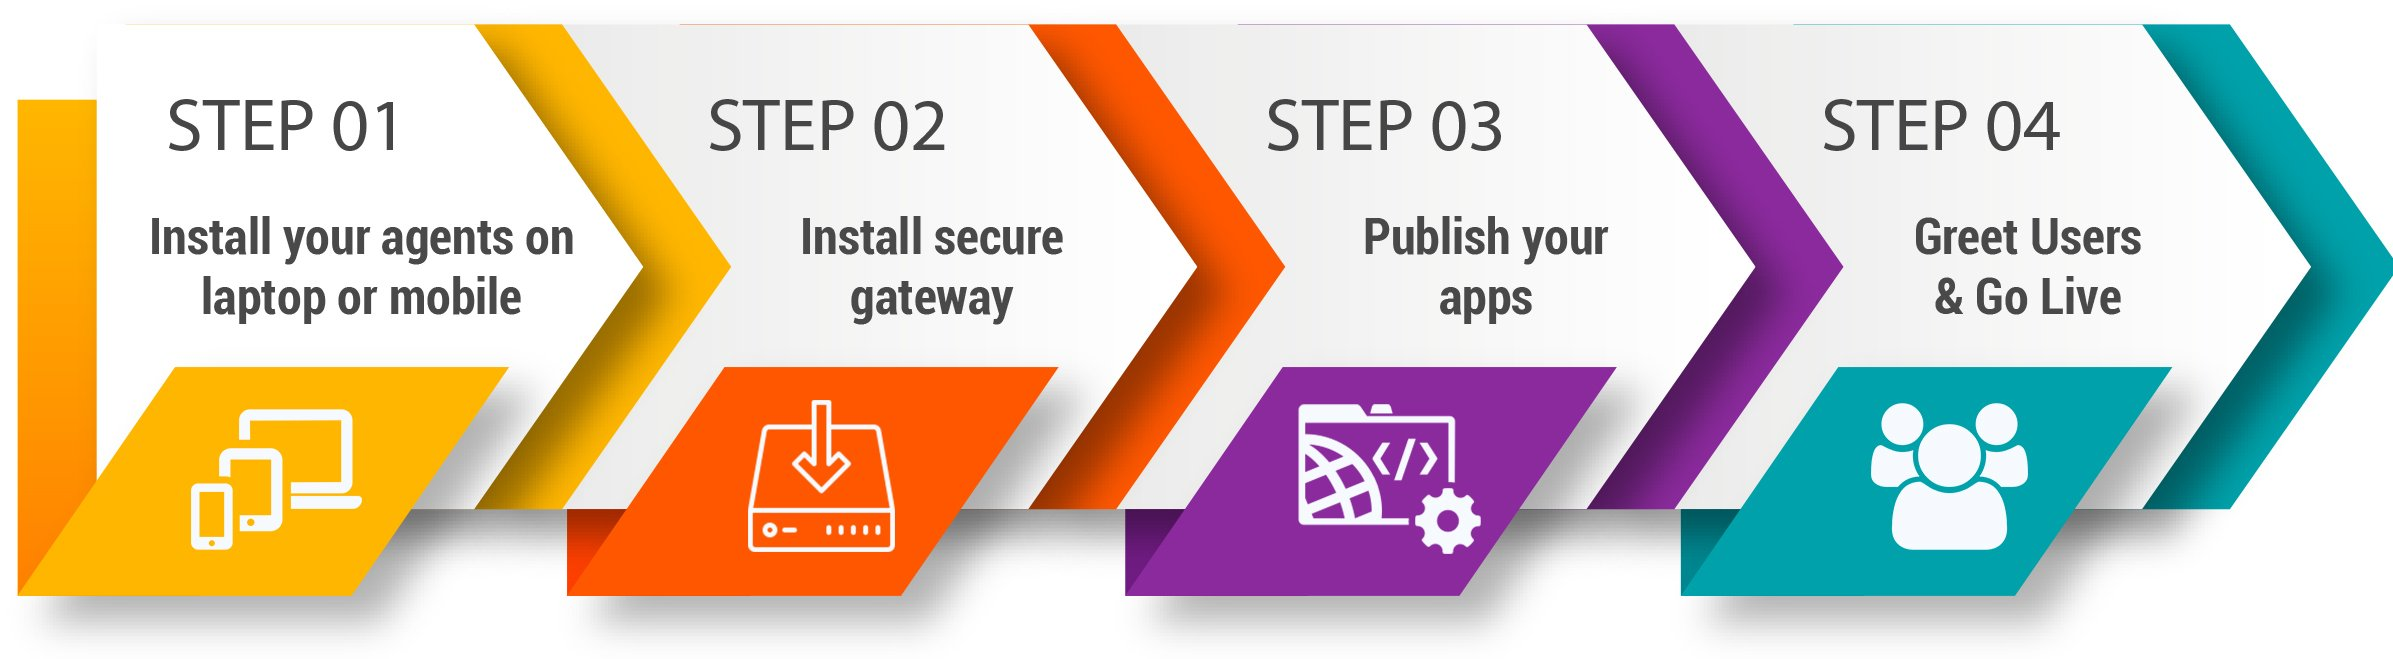 secure-private-access-steps